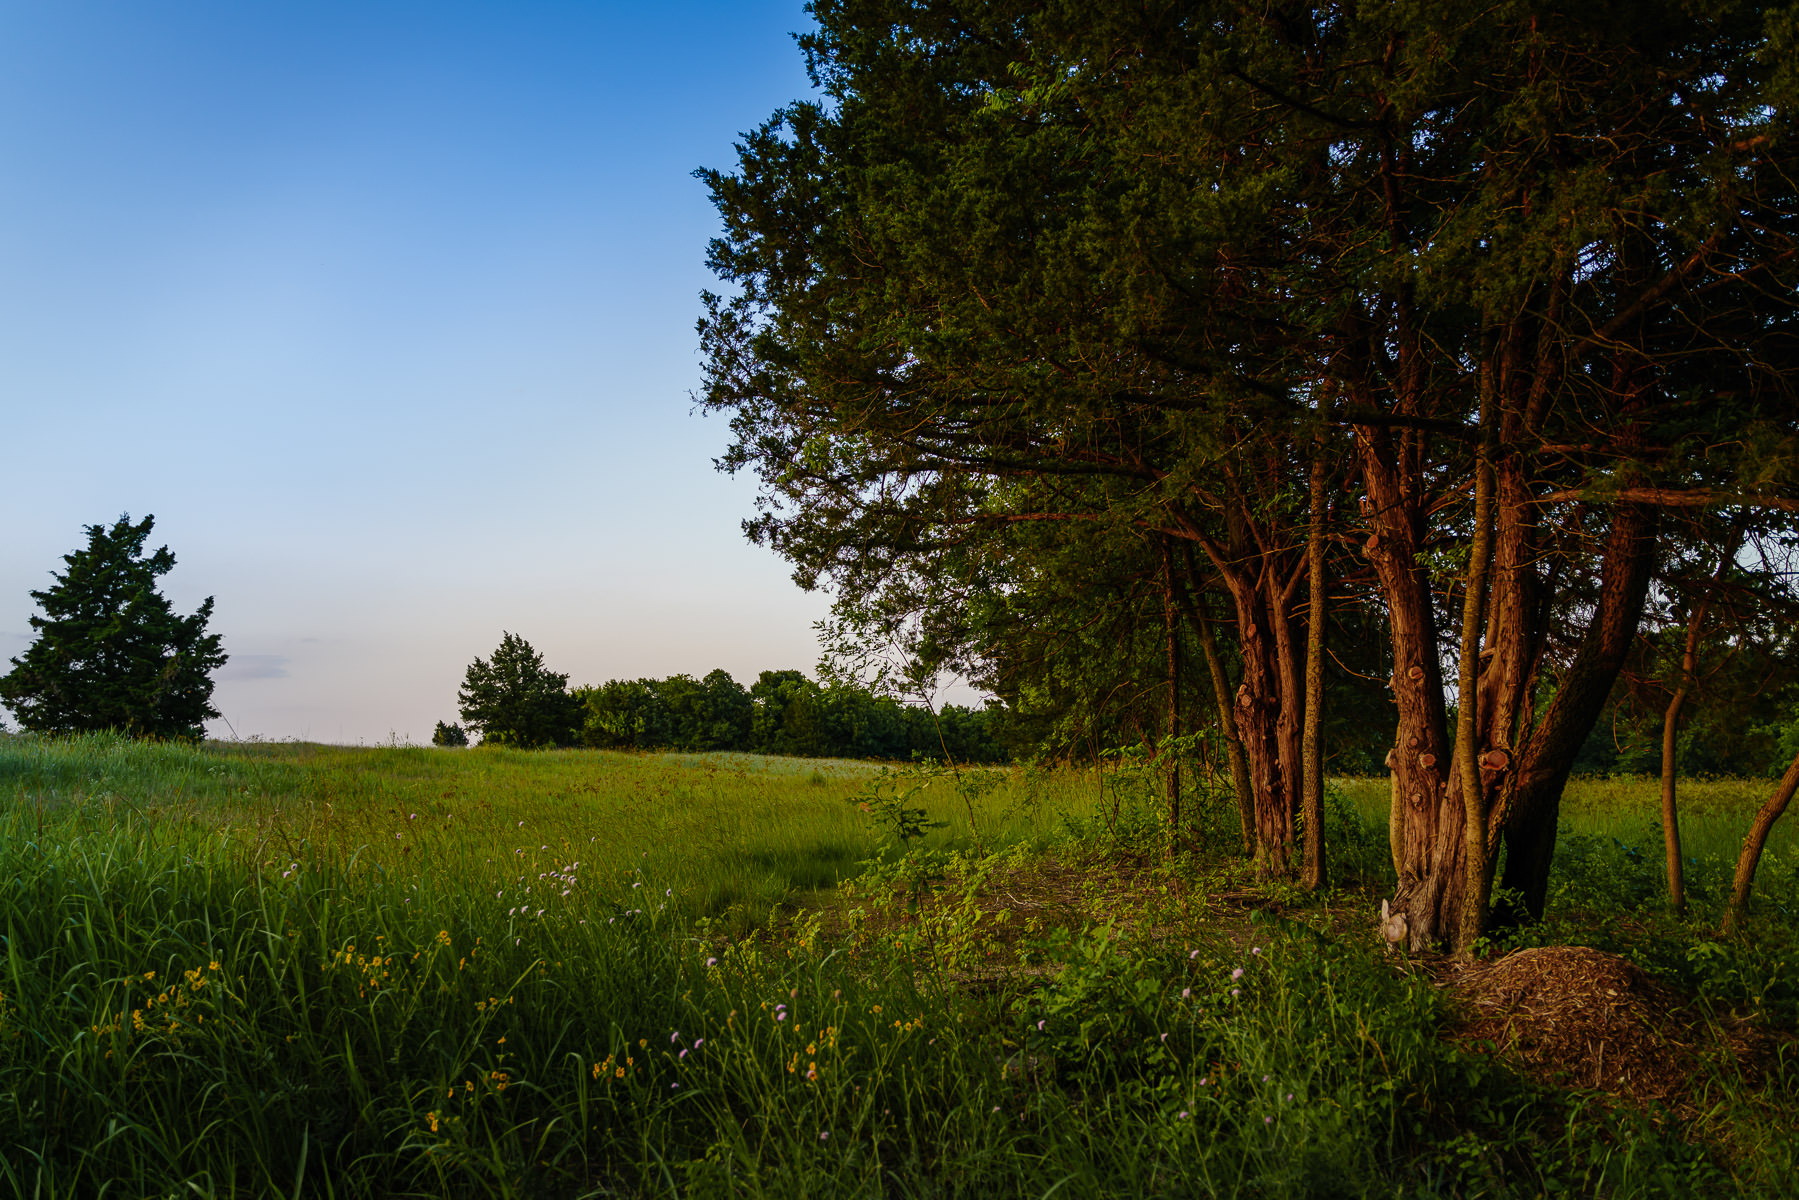 The last light of day illuminates Erwin Park near McKinney, Texas.